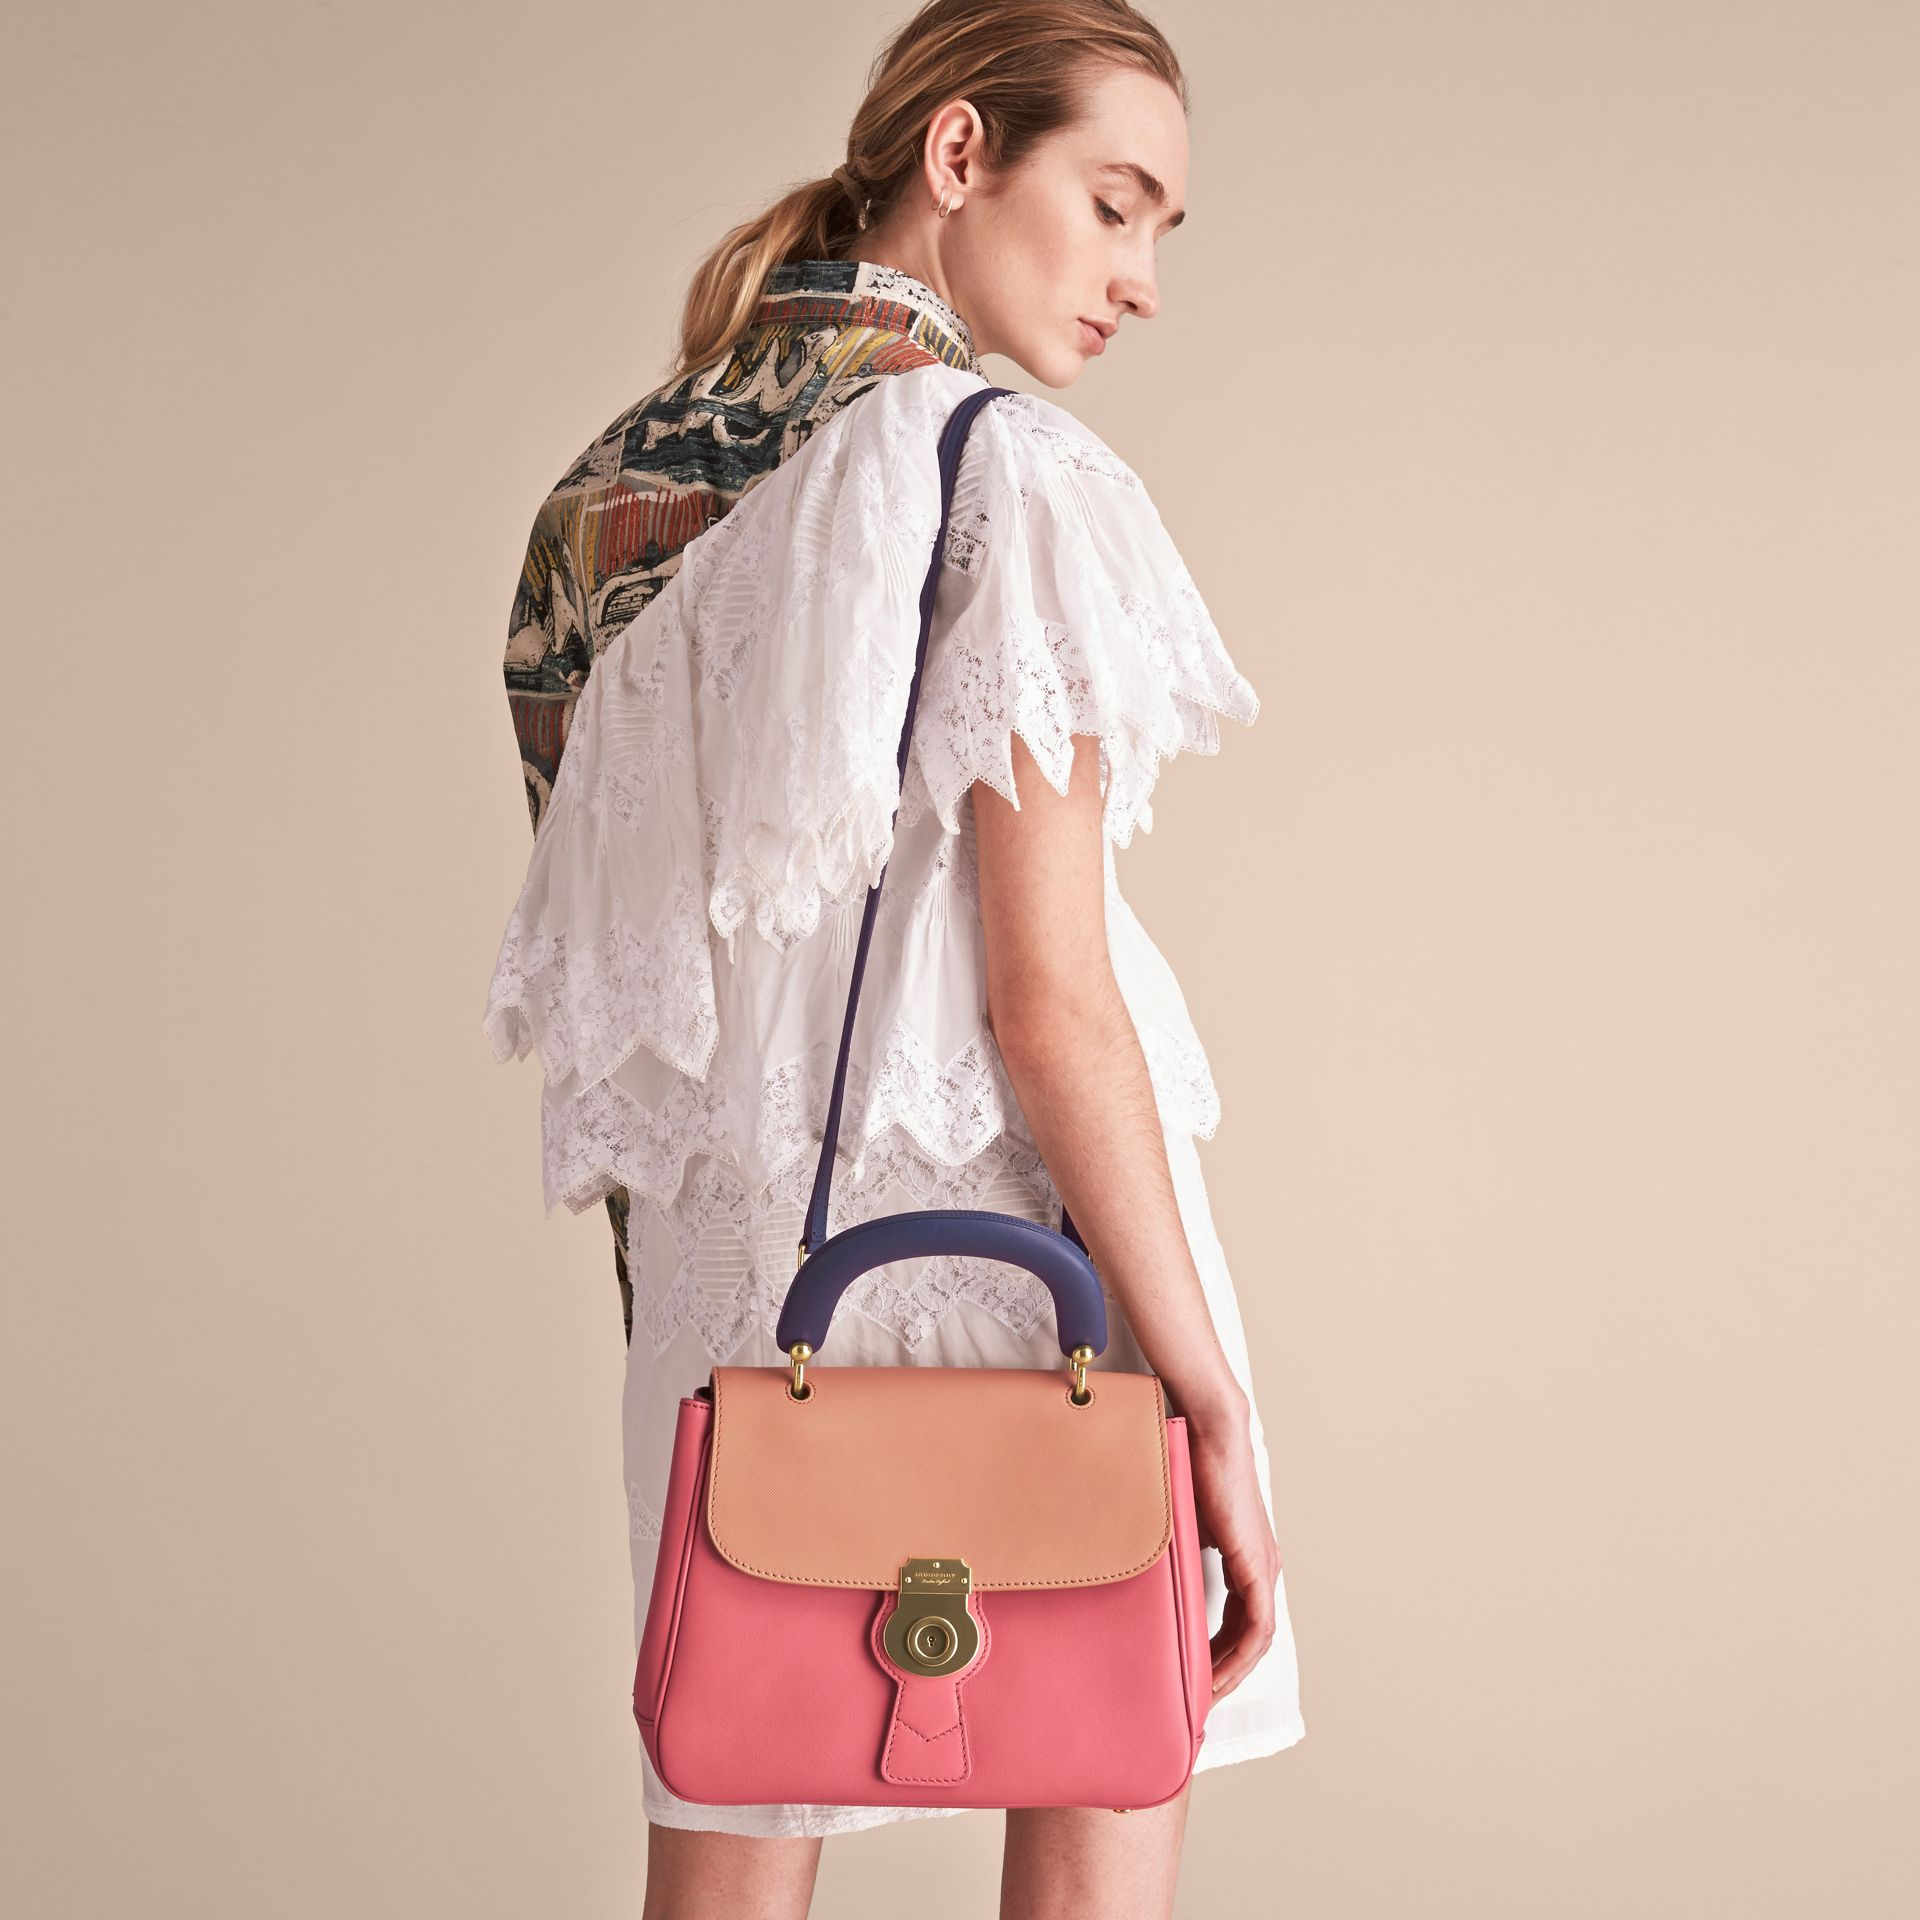 The Medium DK88 Top Handle Bag in Blossom Pink/pale Clementine - Women | Burberry Singapore - gallery image 7